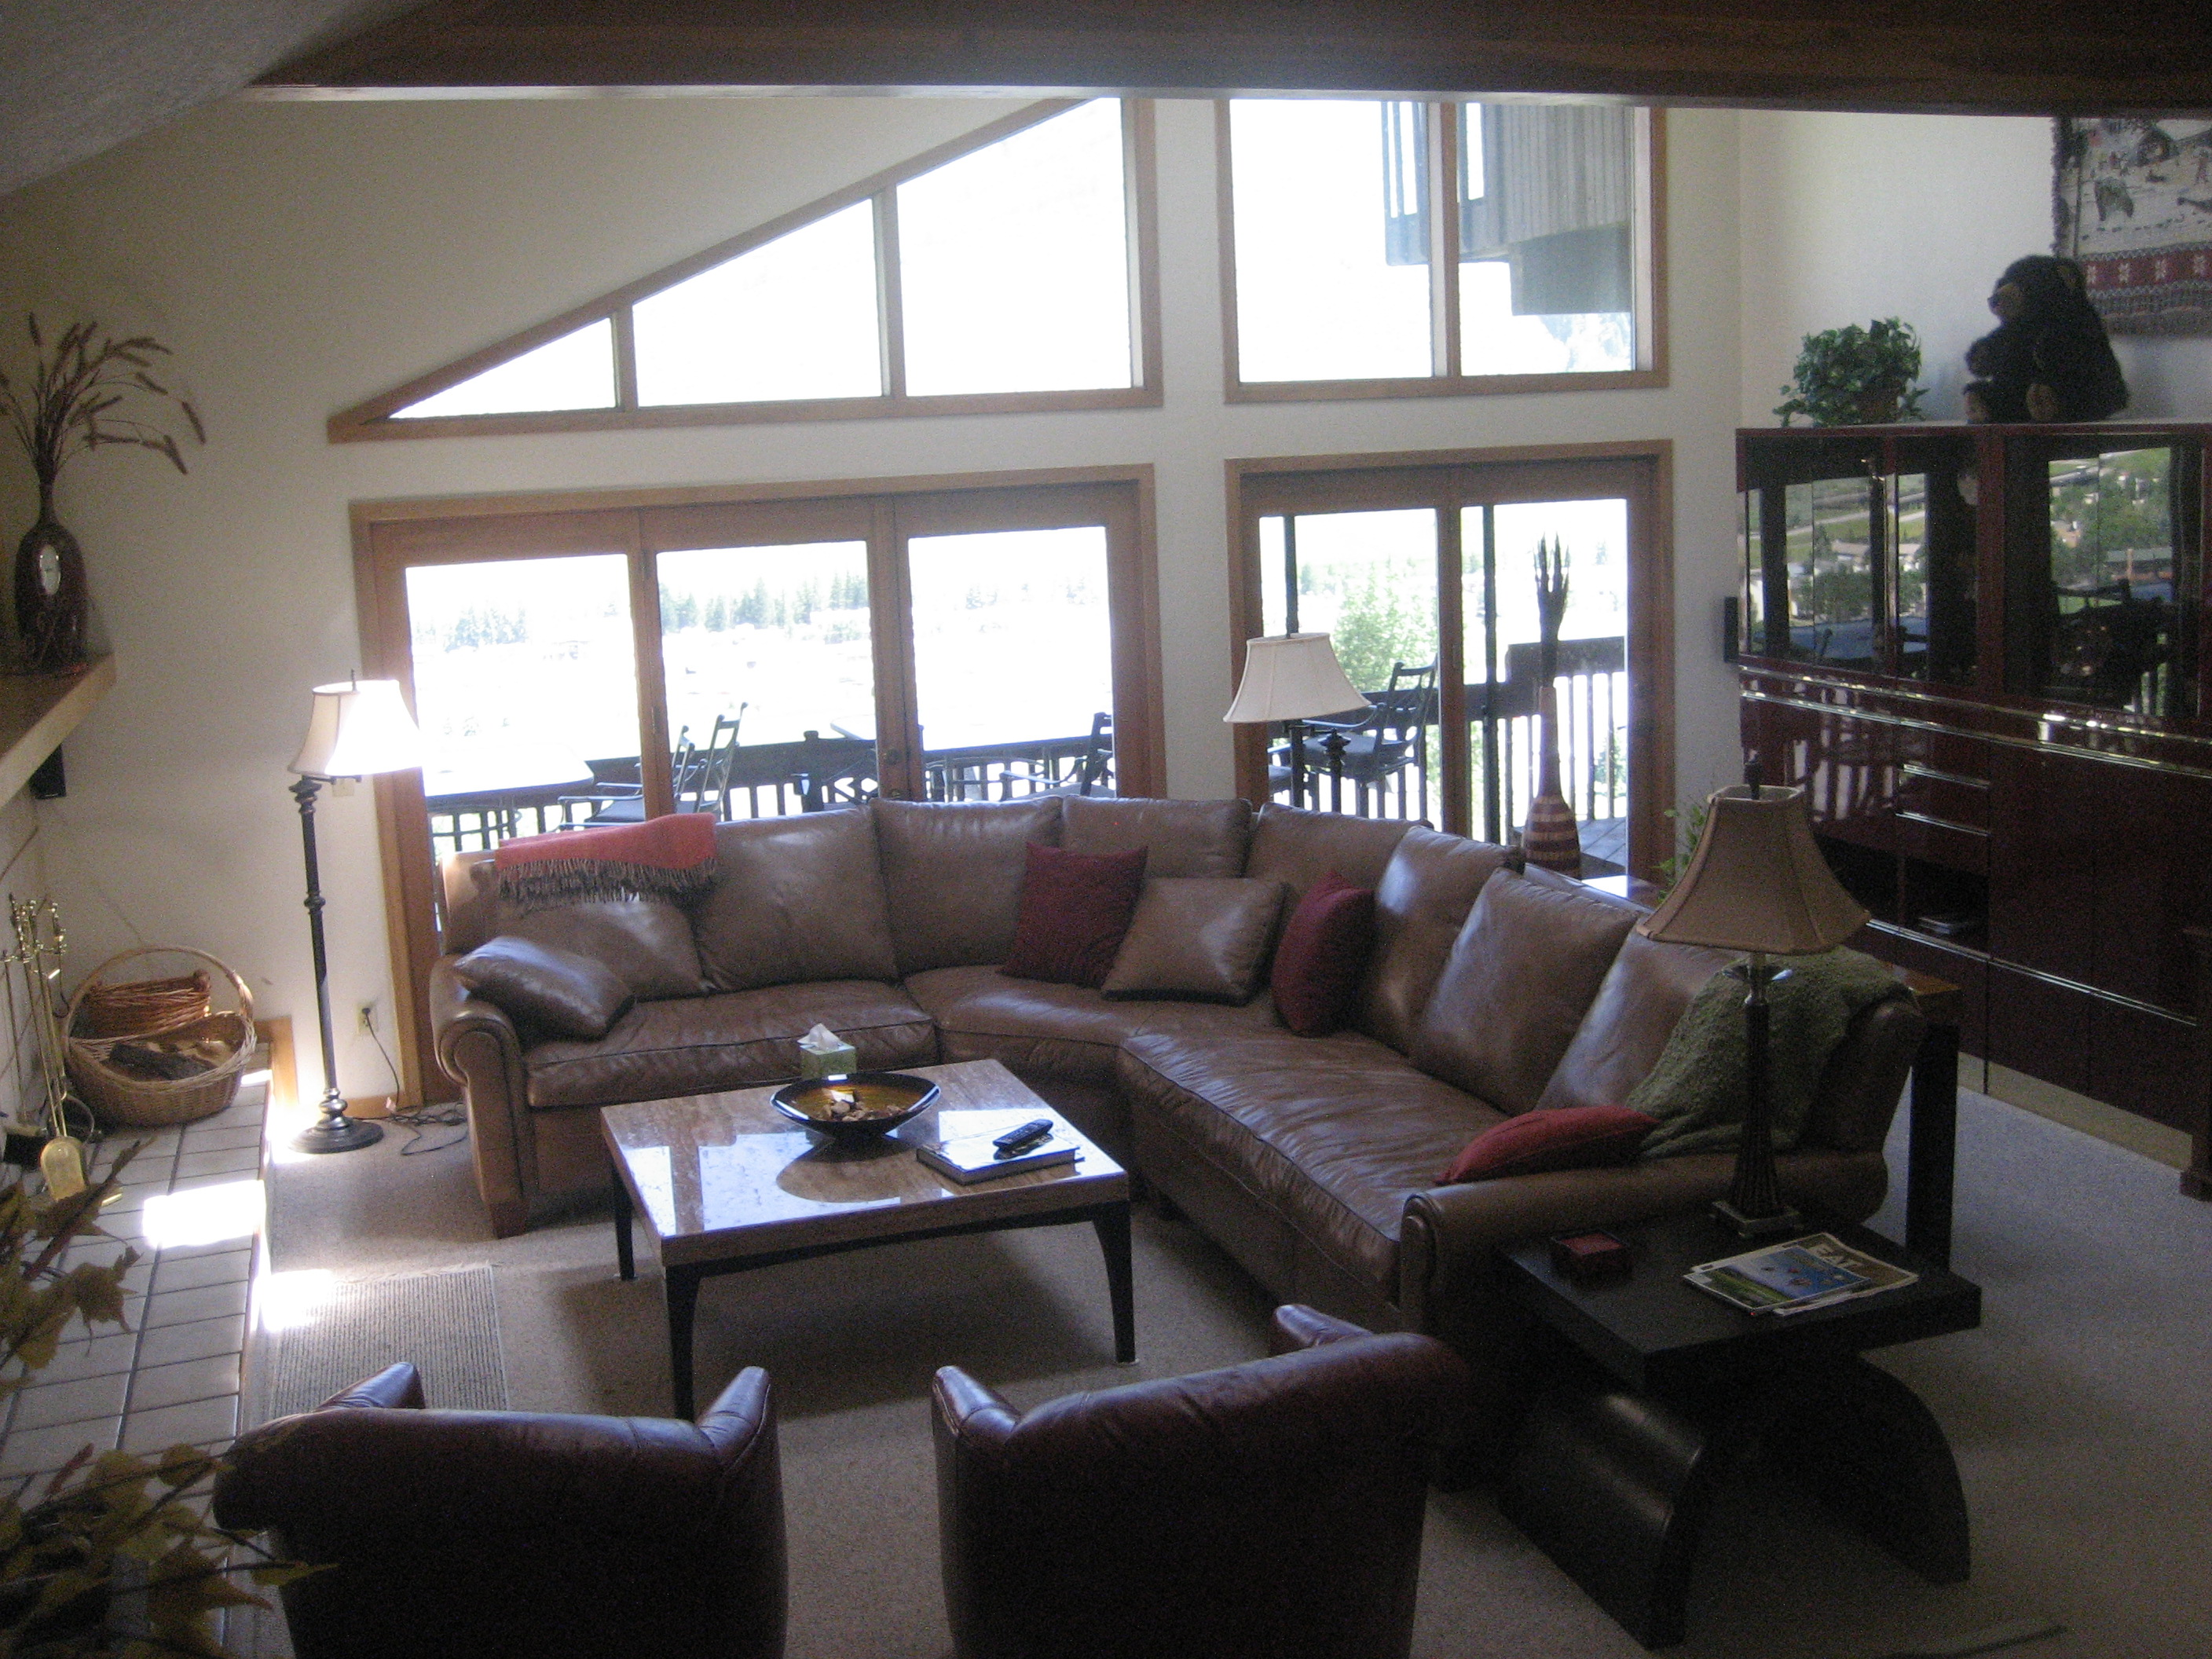 vail rental by owner in Vail Colorado